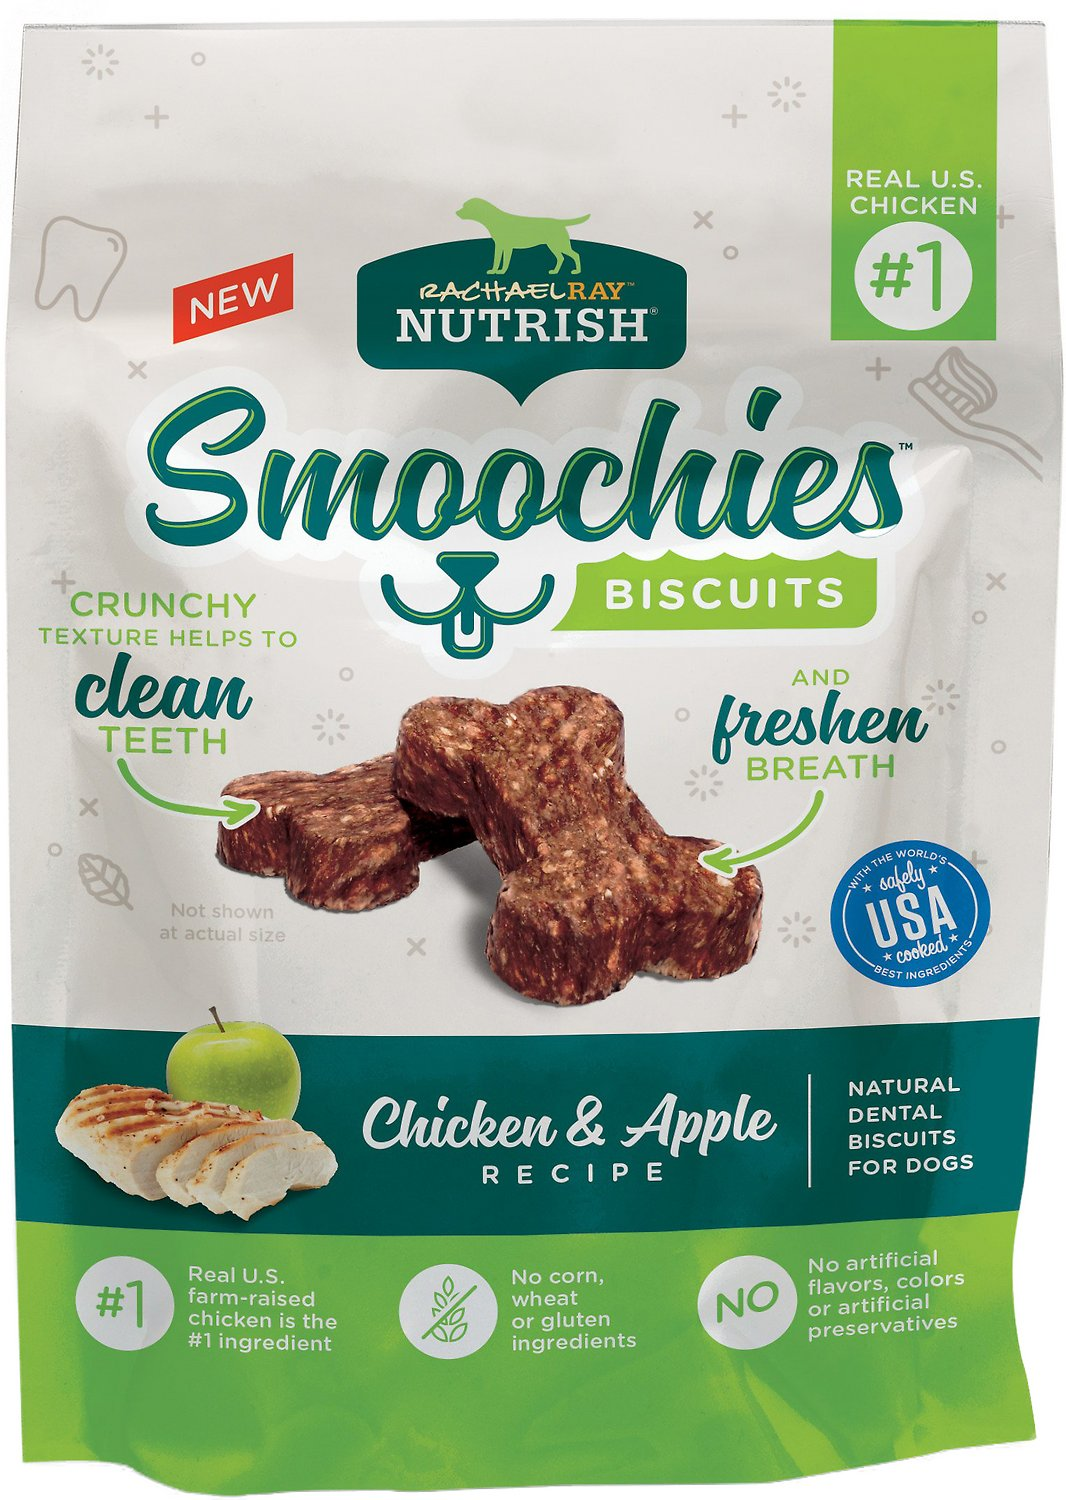 Rachael Ray Nutrish Smoochies Biscuits Natural Chicken